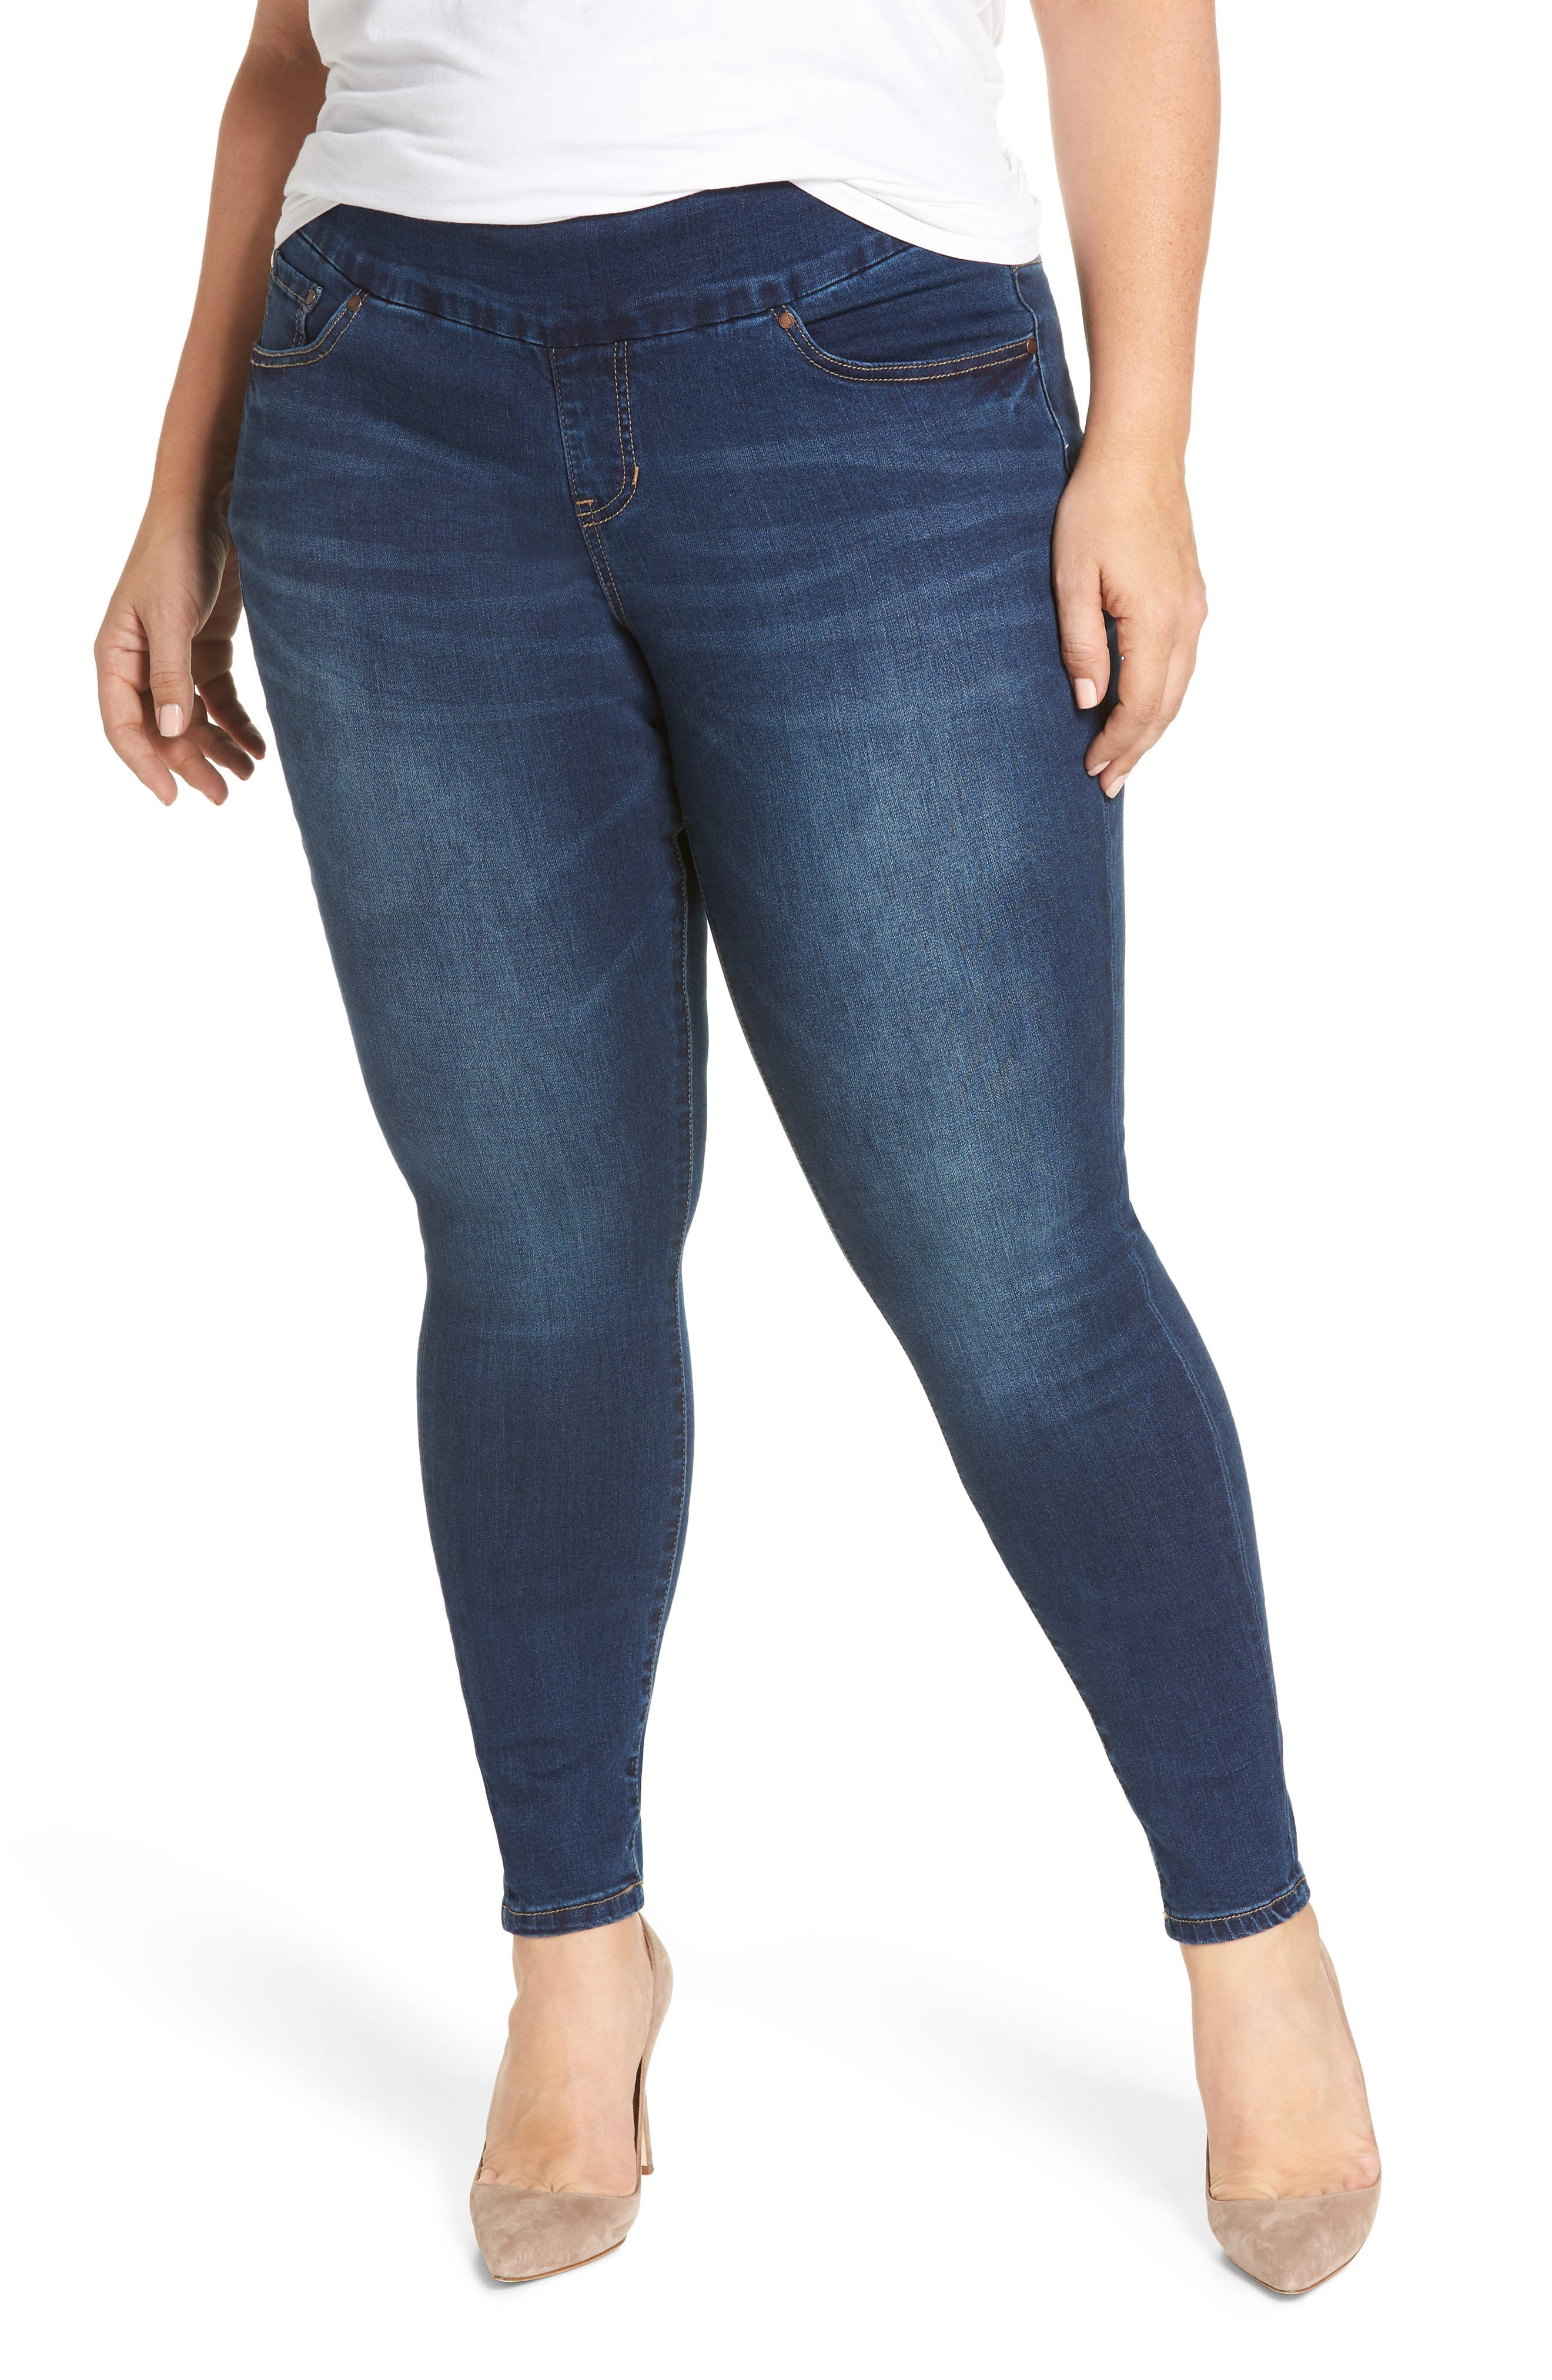 Nora Stretch Skinny Jeans,                             Main thumbnail 1, color,                             Med Indigo